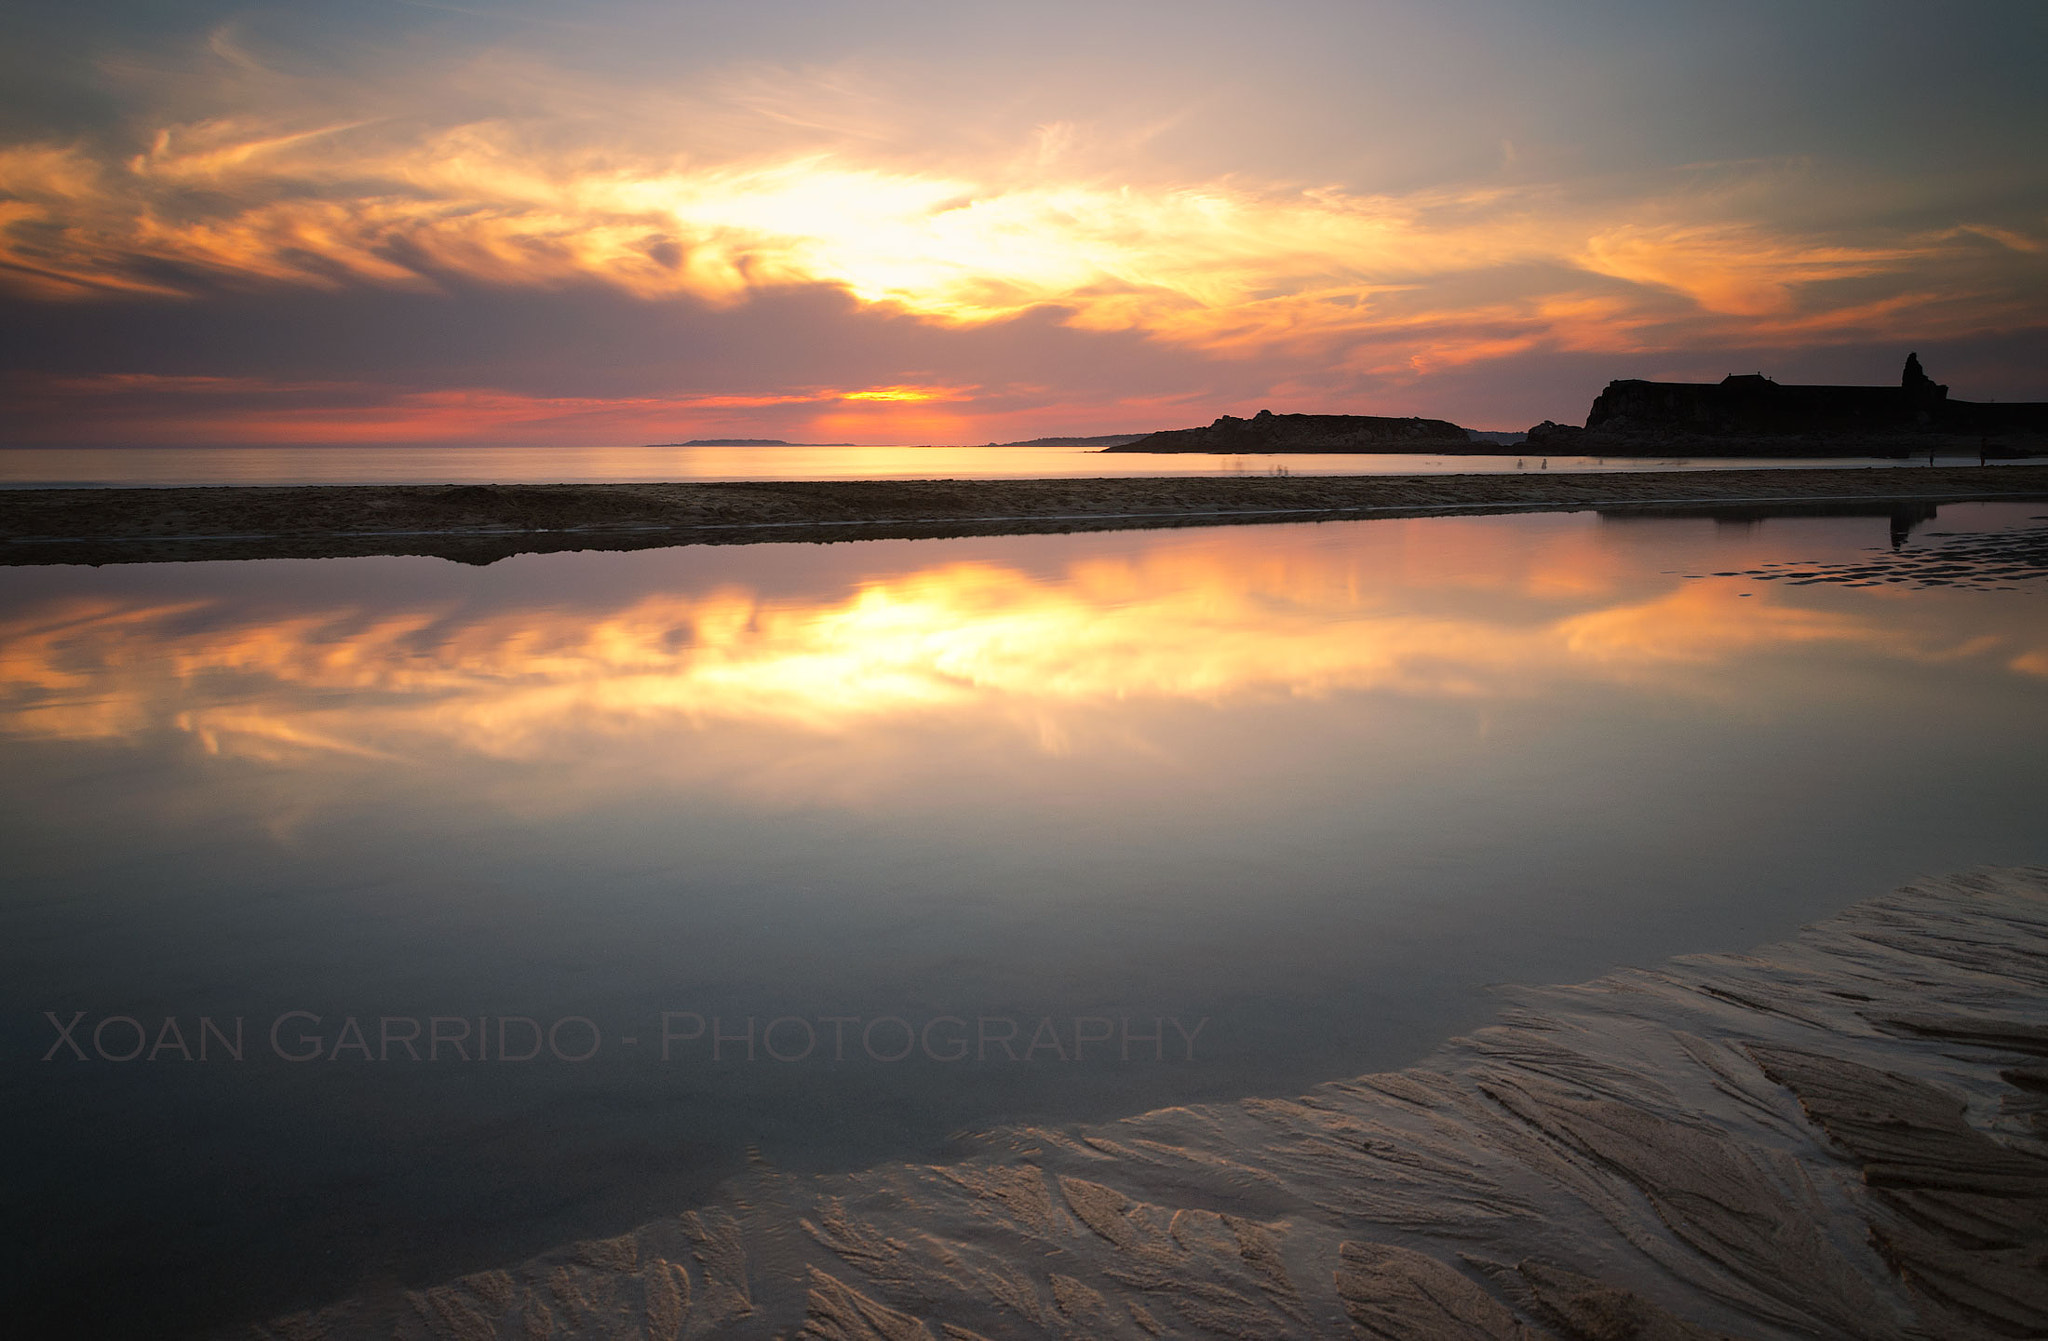 Photograph Last Light in Foxos Beach by Xoan C. Garrido on 500px